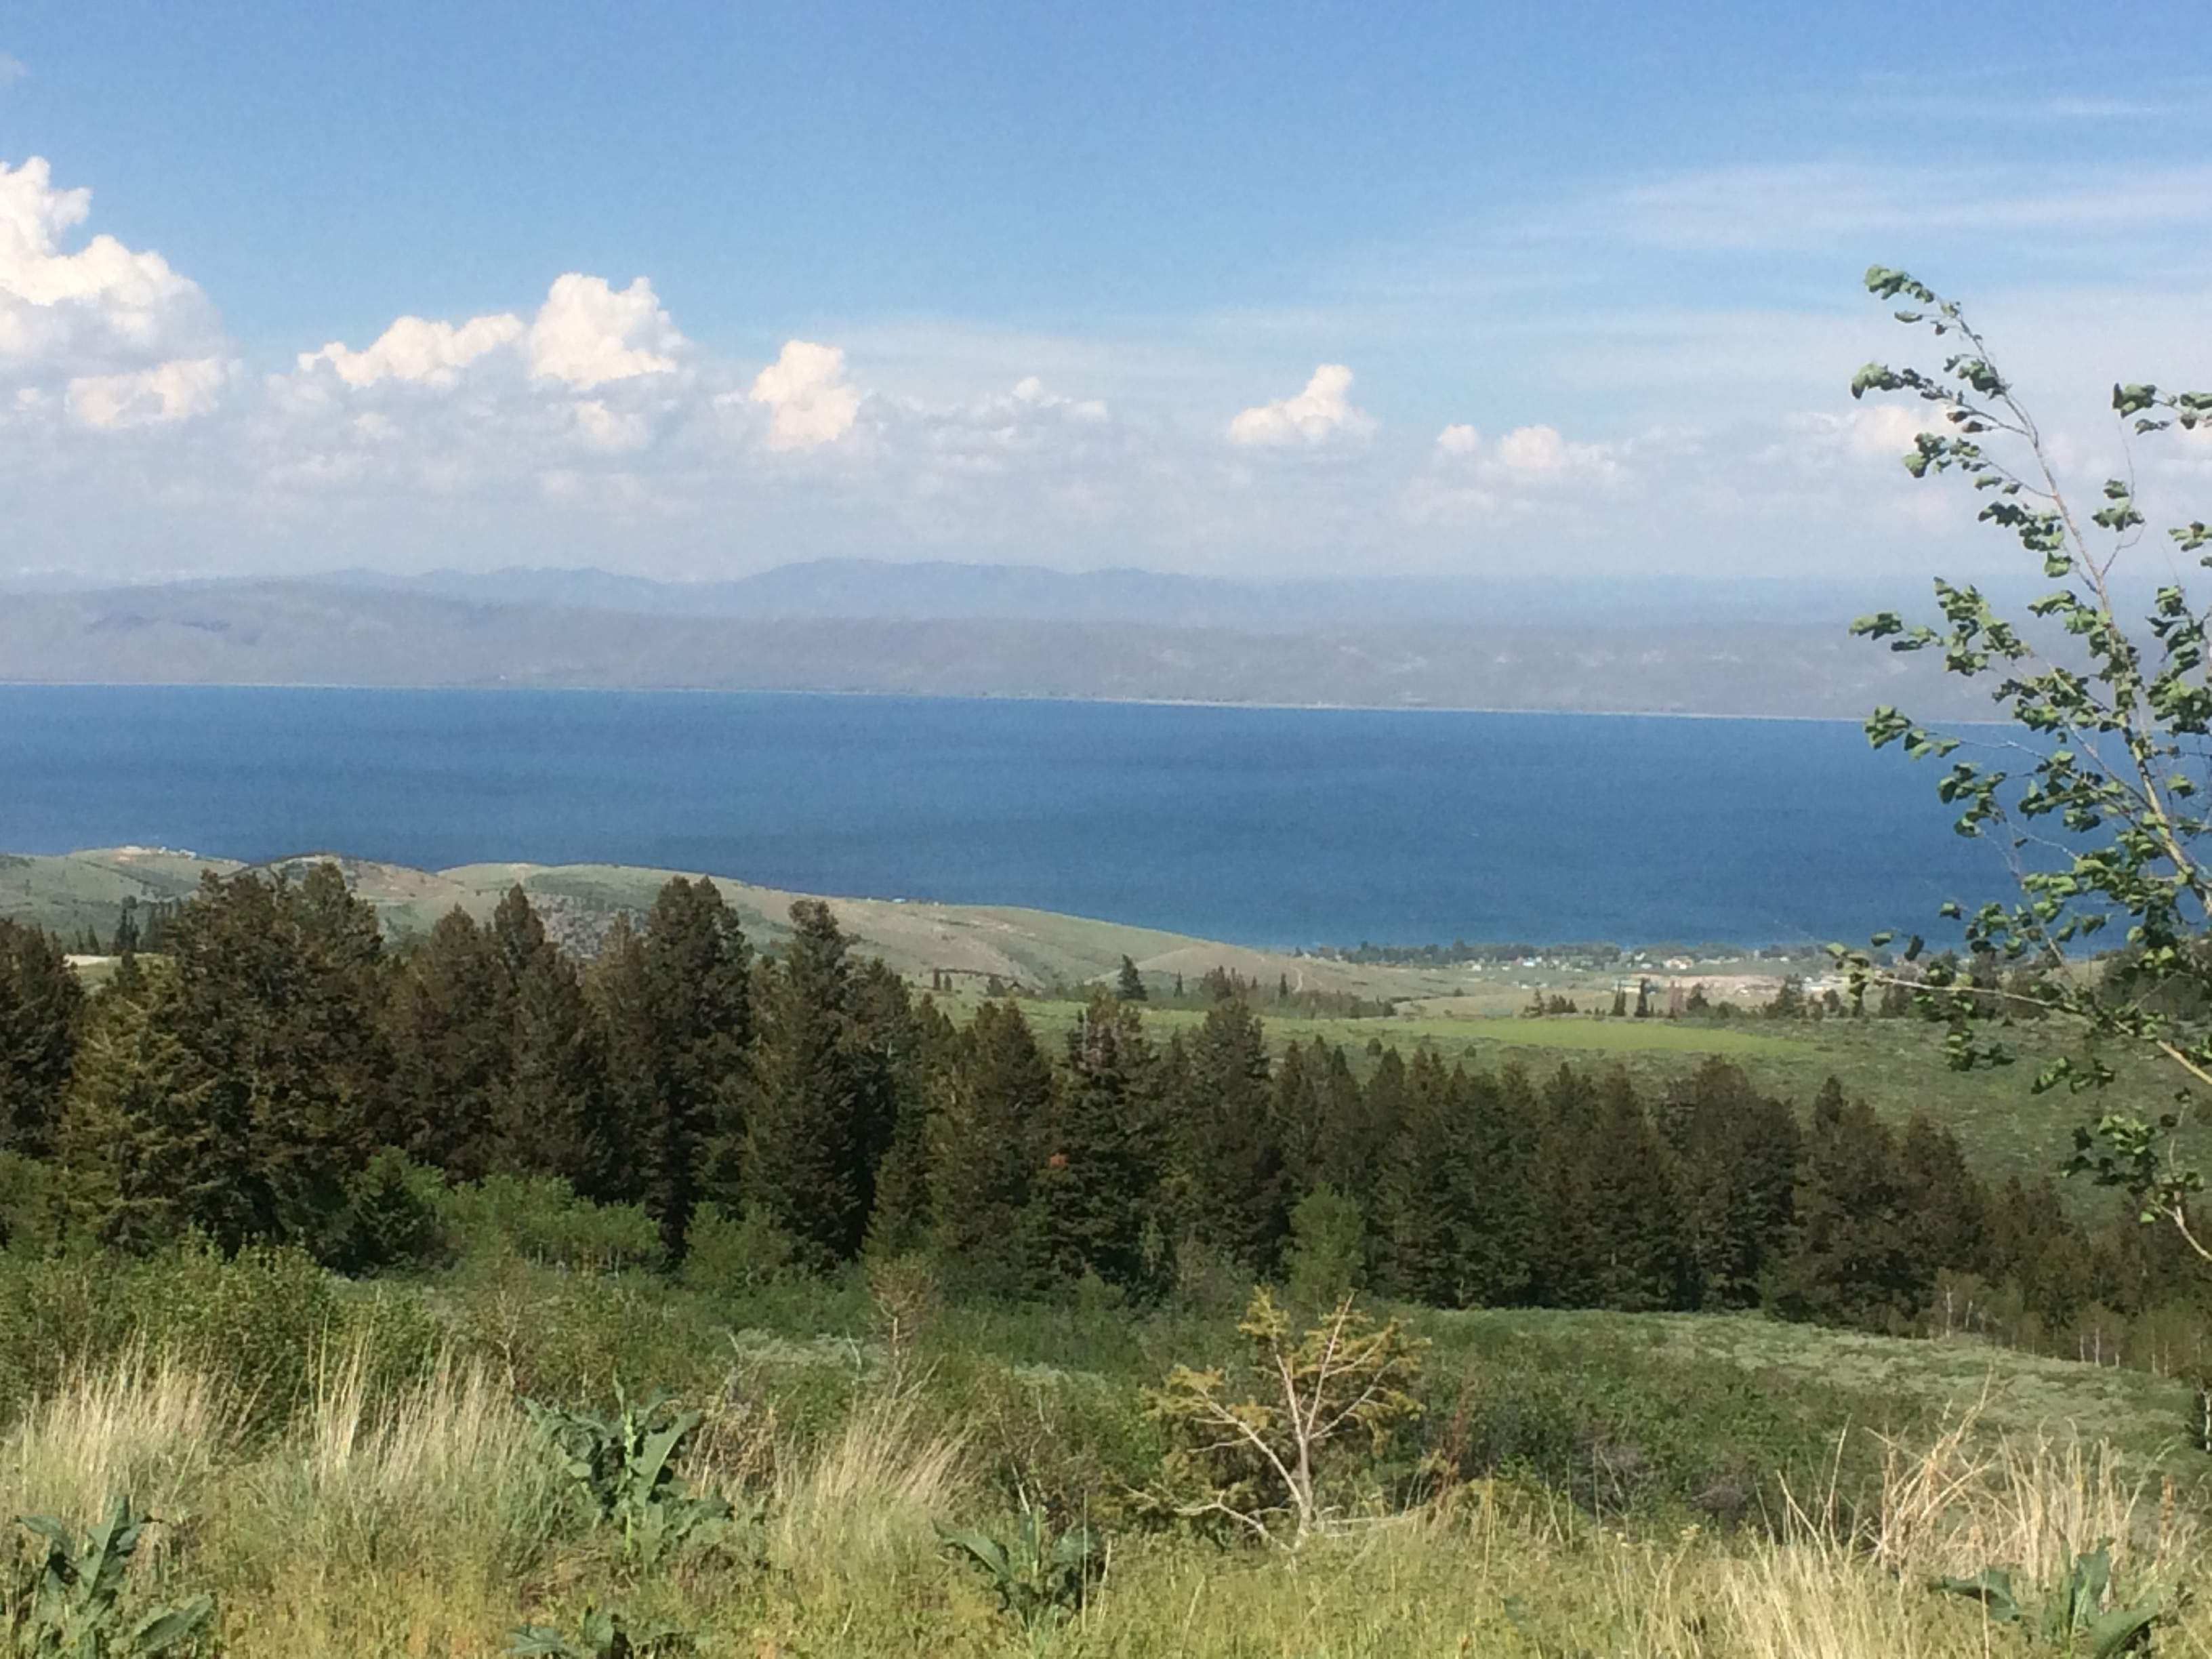 First glimpse of Bear Lake